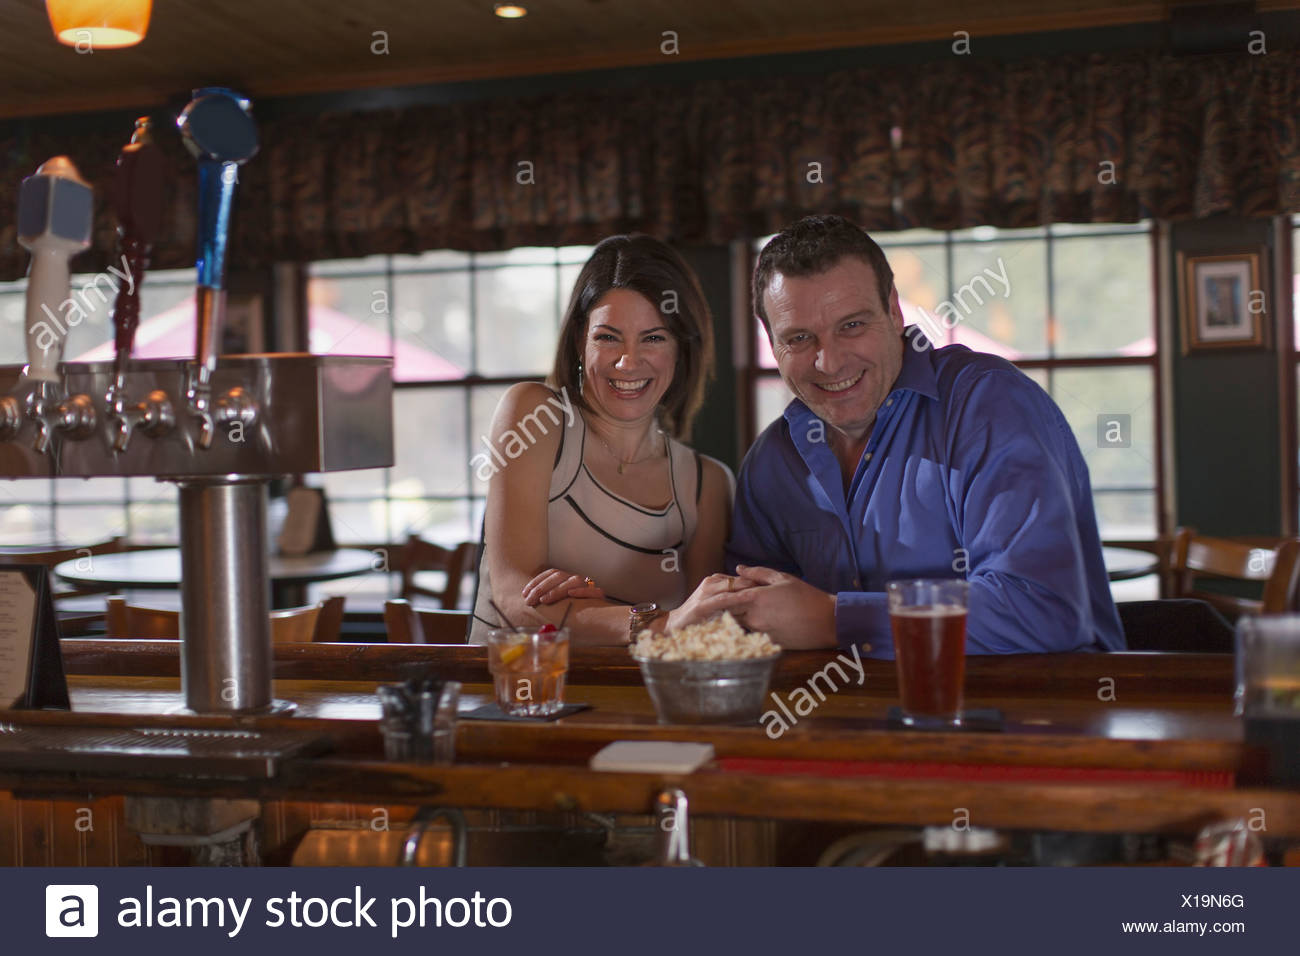 A man and woman side by side seated at a bar smiling On a date  New Hope Pennsylvania USA - Stock Image